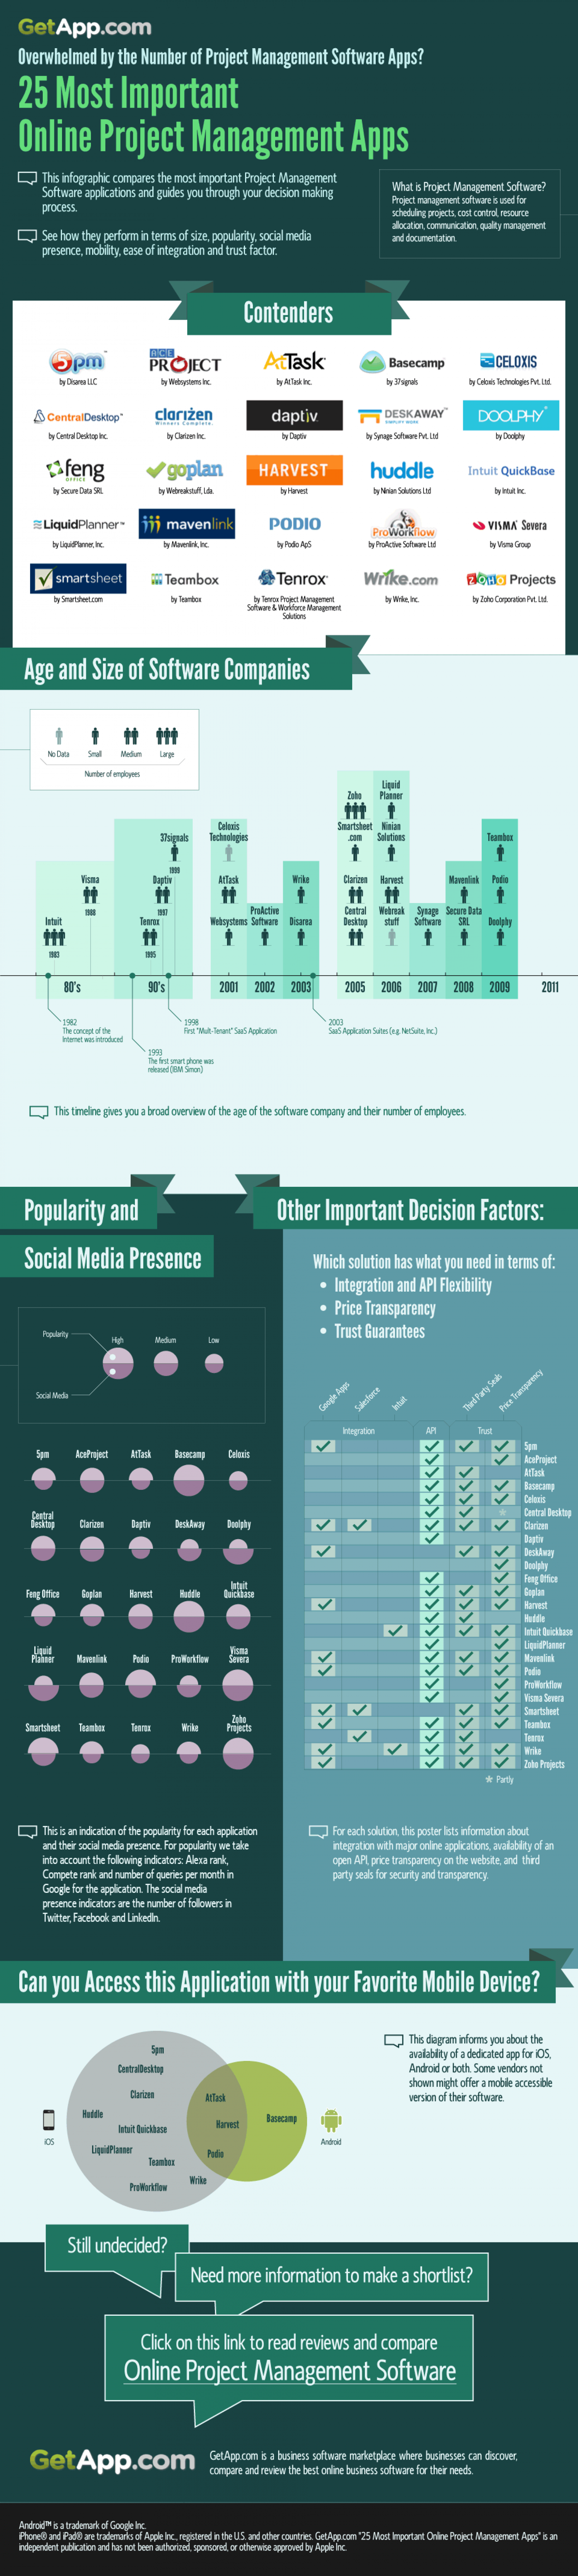 Top Online Project Management Software Infographic